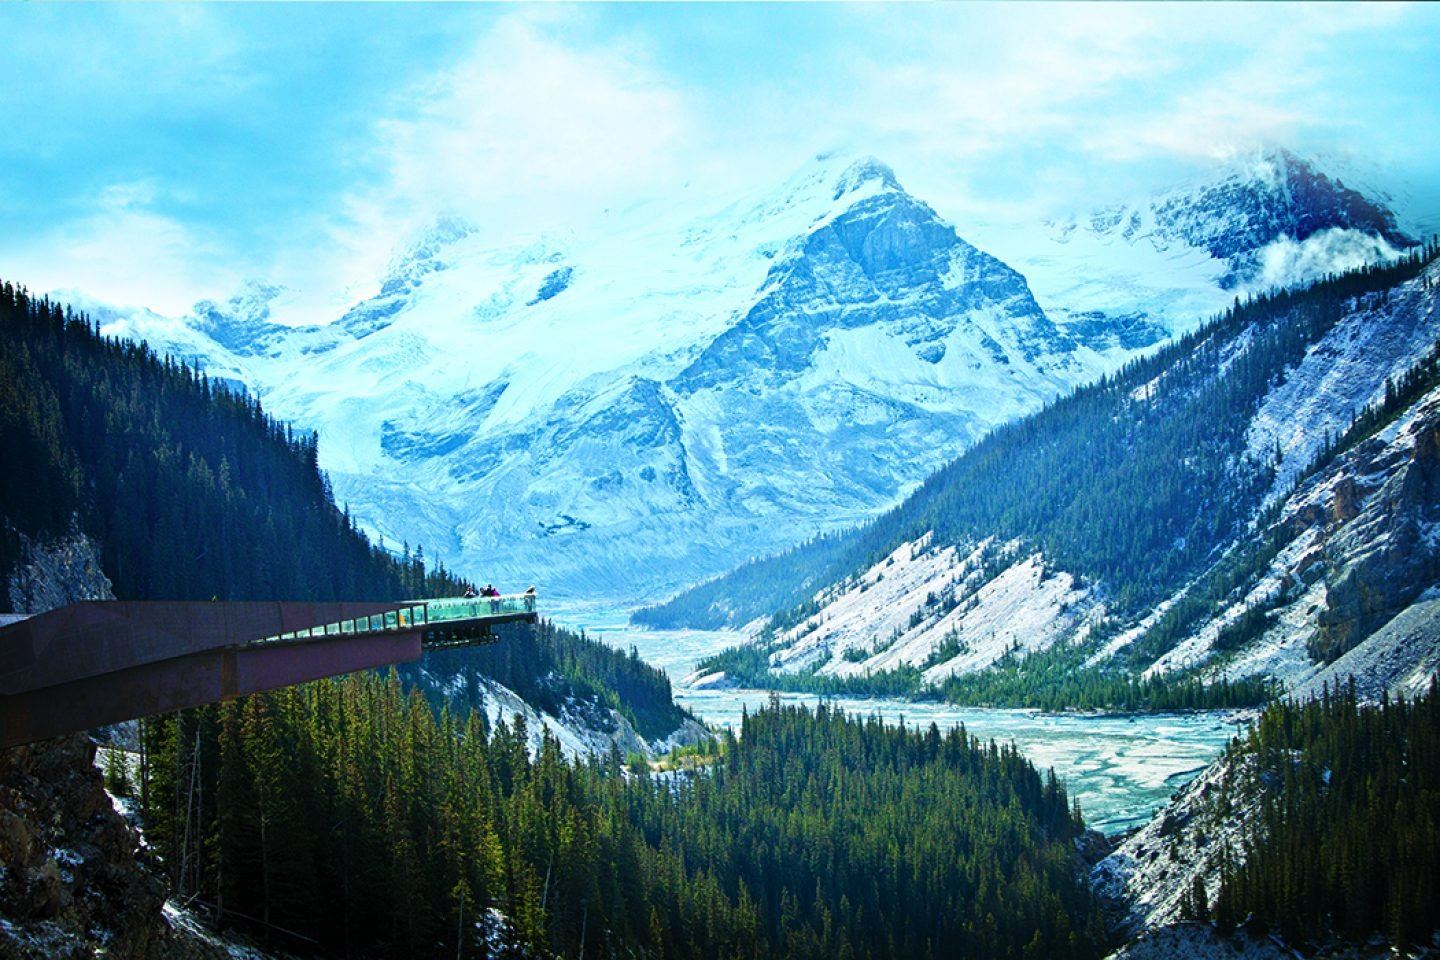 top10viewpoints-Glacier-Skywalk-2015-Image-2633